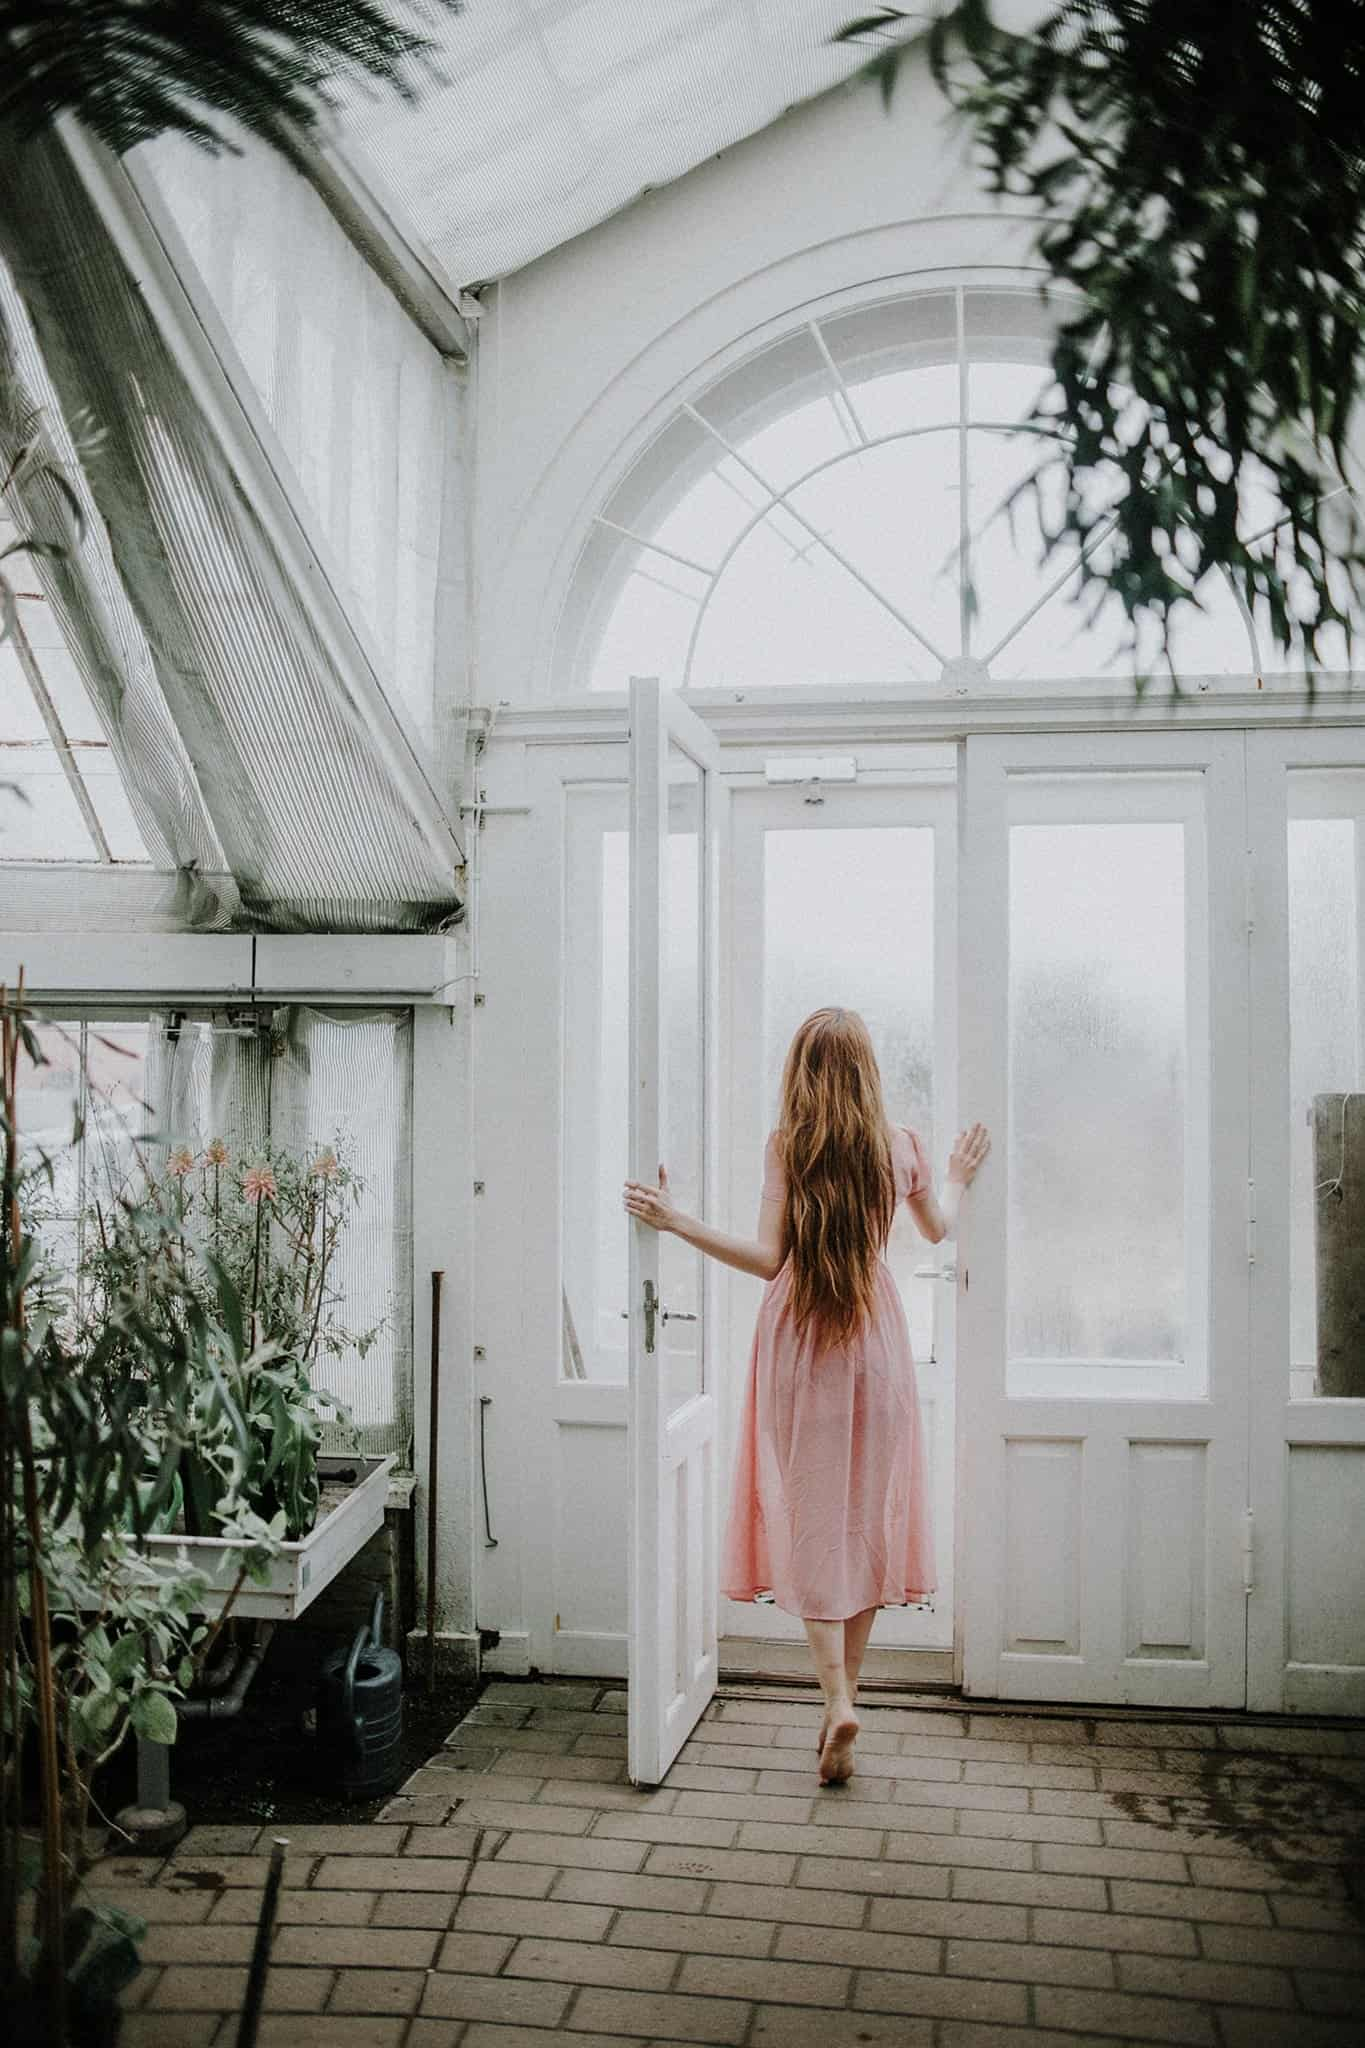 A girl is walking out through a door in a greenhouse